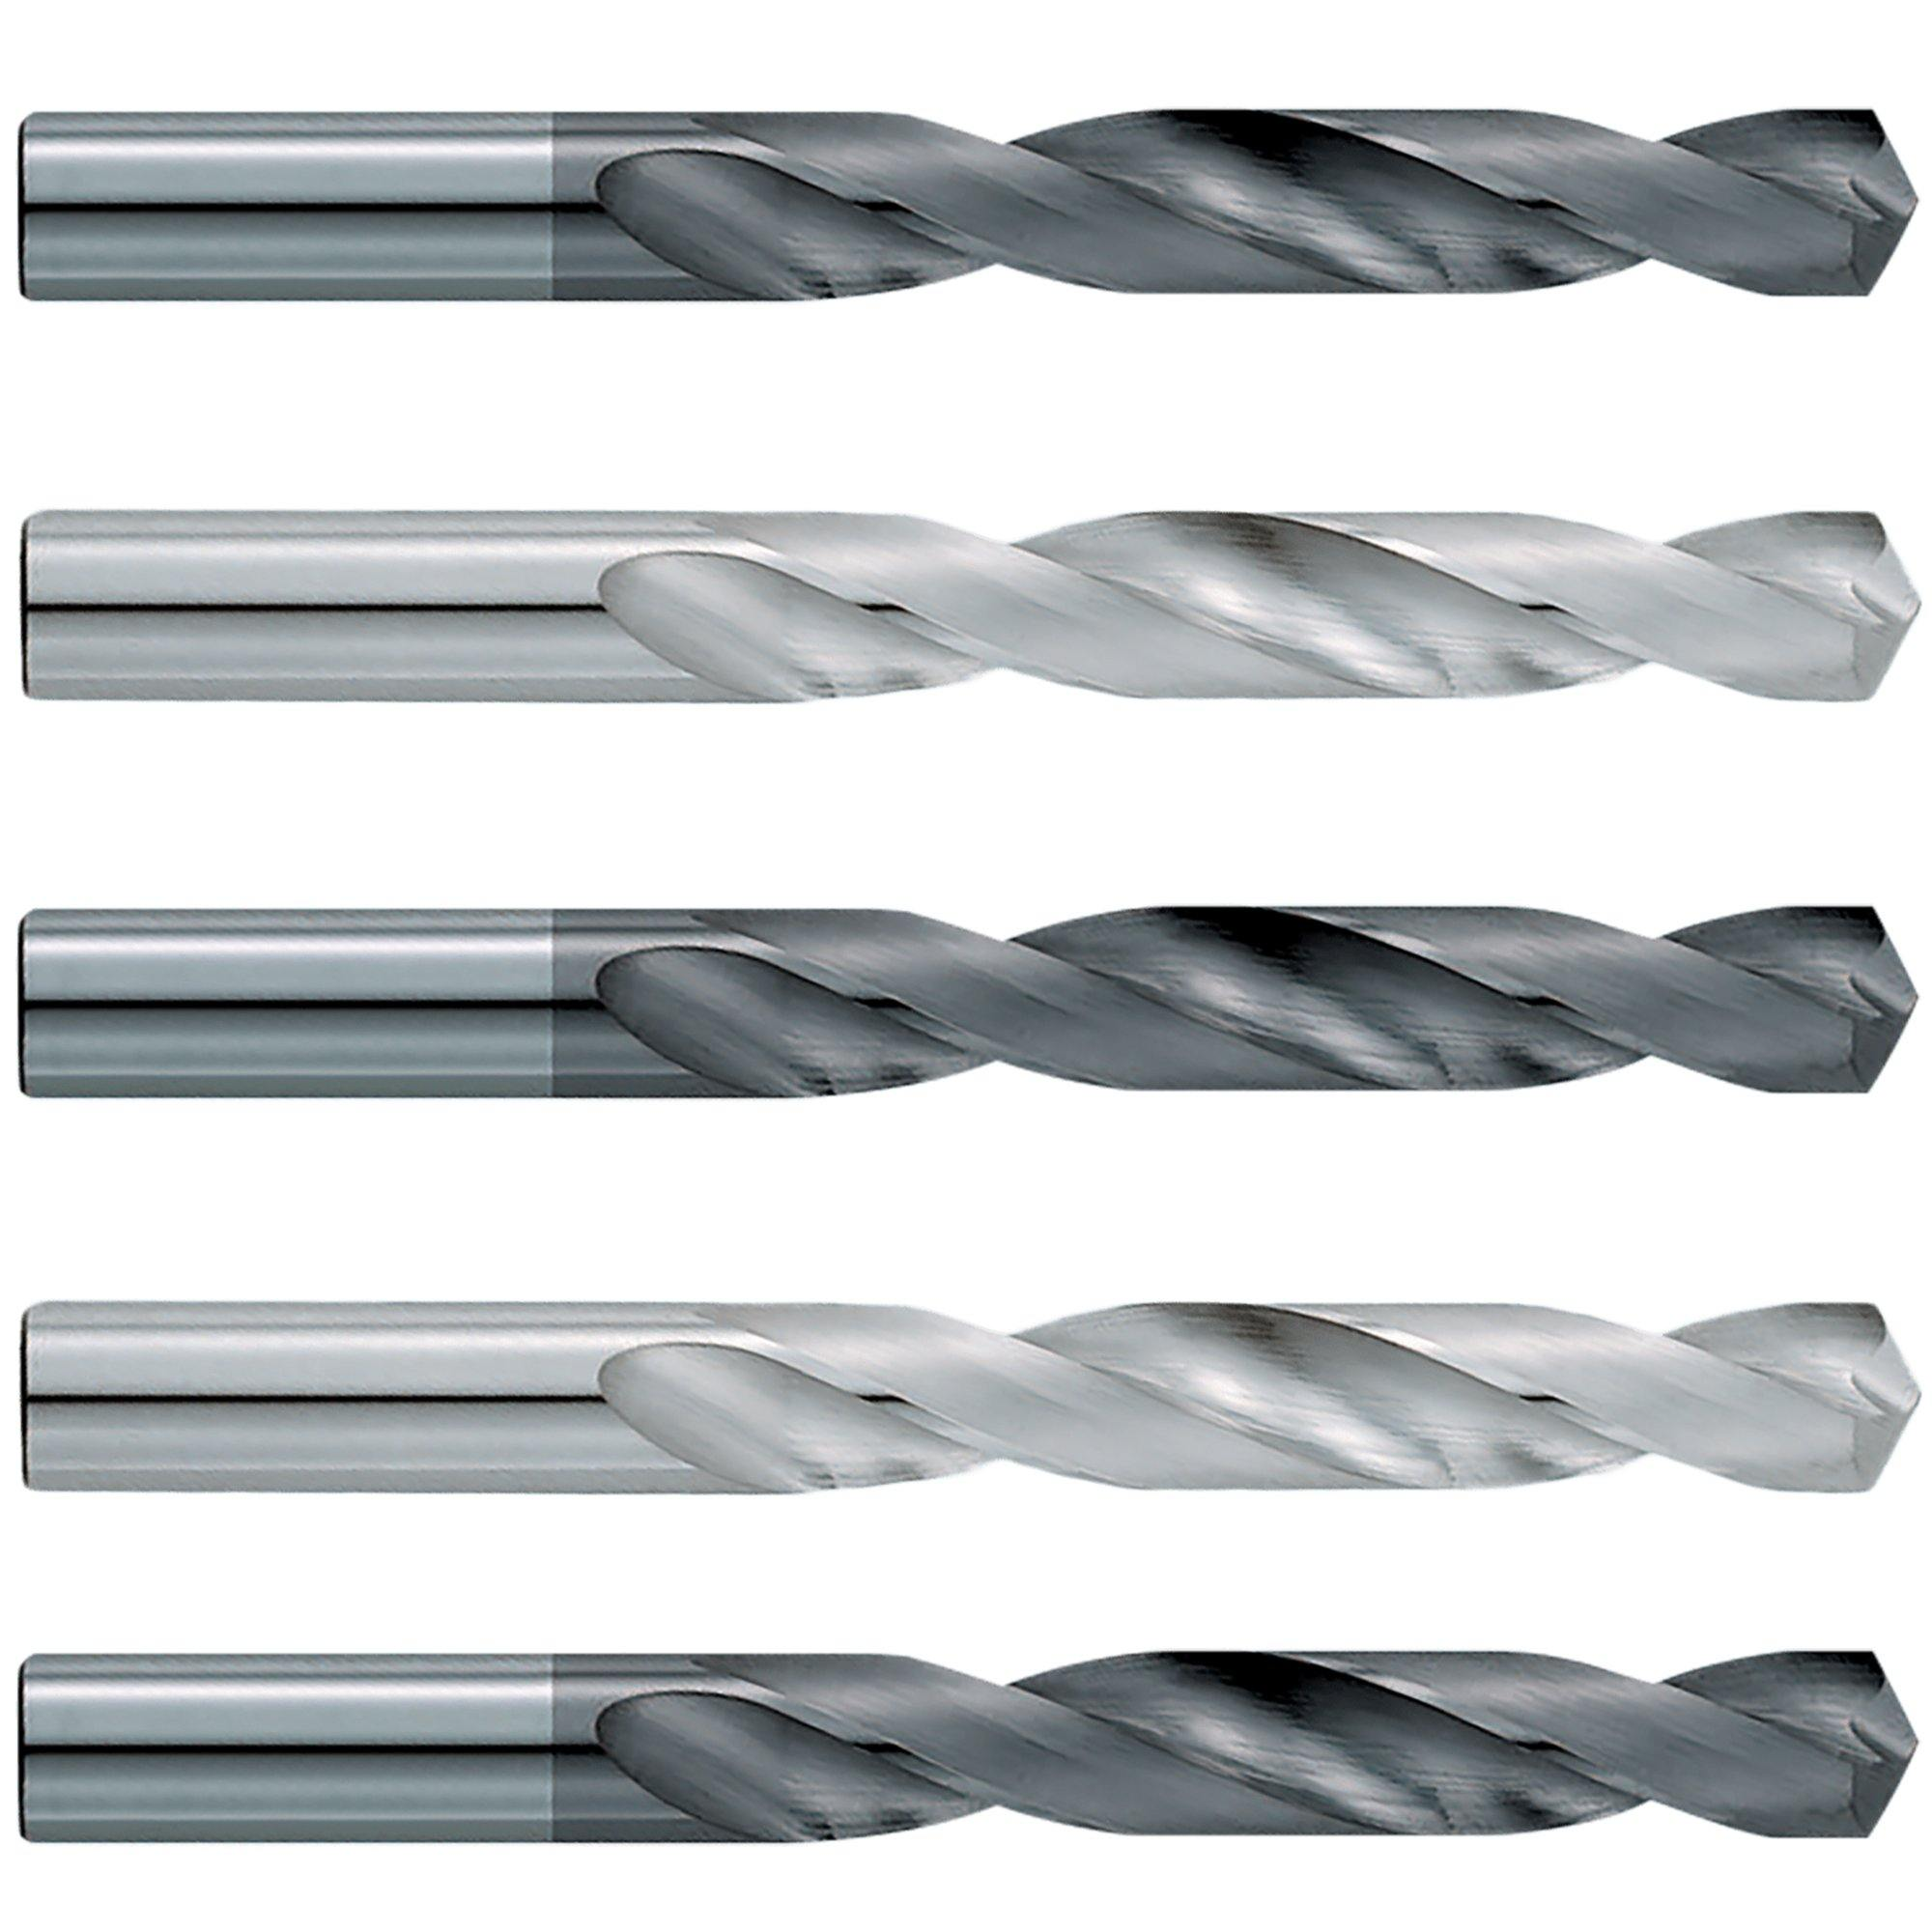 "(5 Pack)  Size (W)  .386 x 2-7/8"" LOF x  4-1/2"" OAL Carbide Drill Bits - End Mill Store"